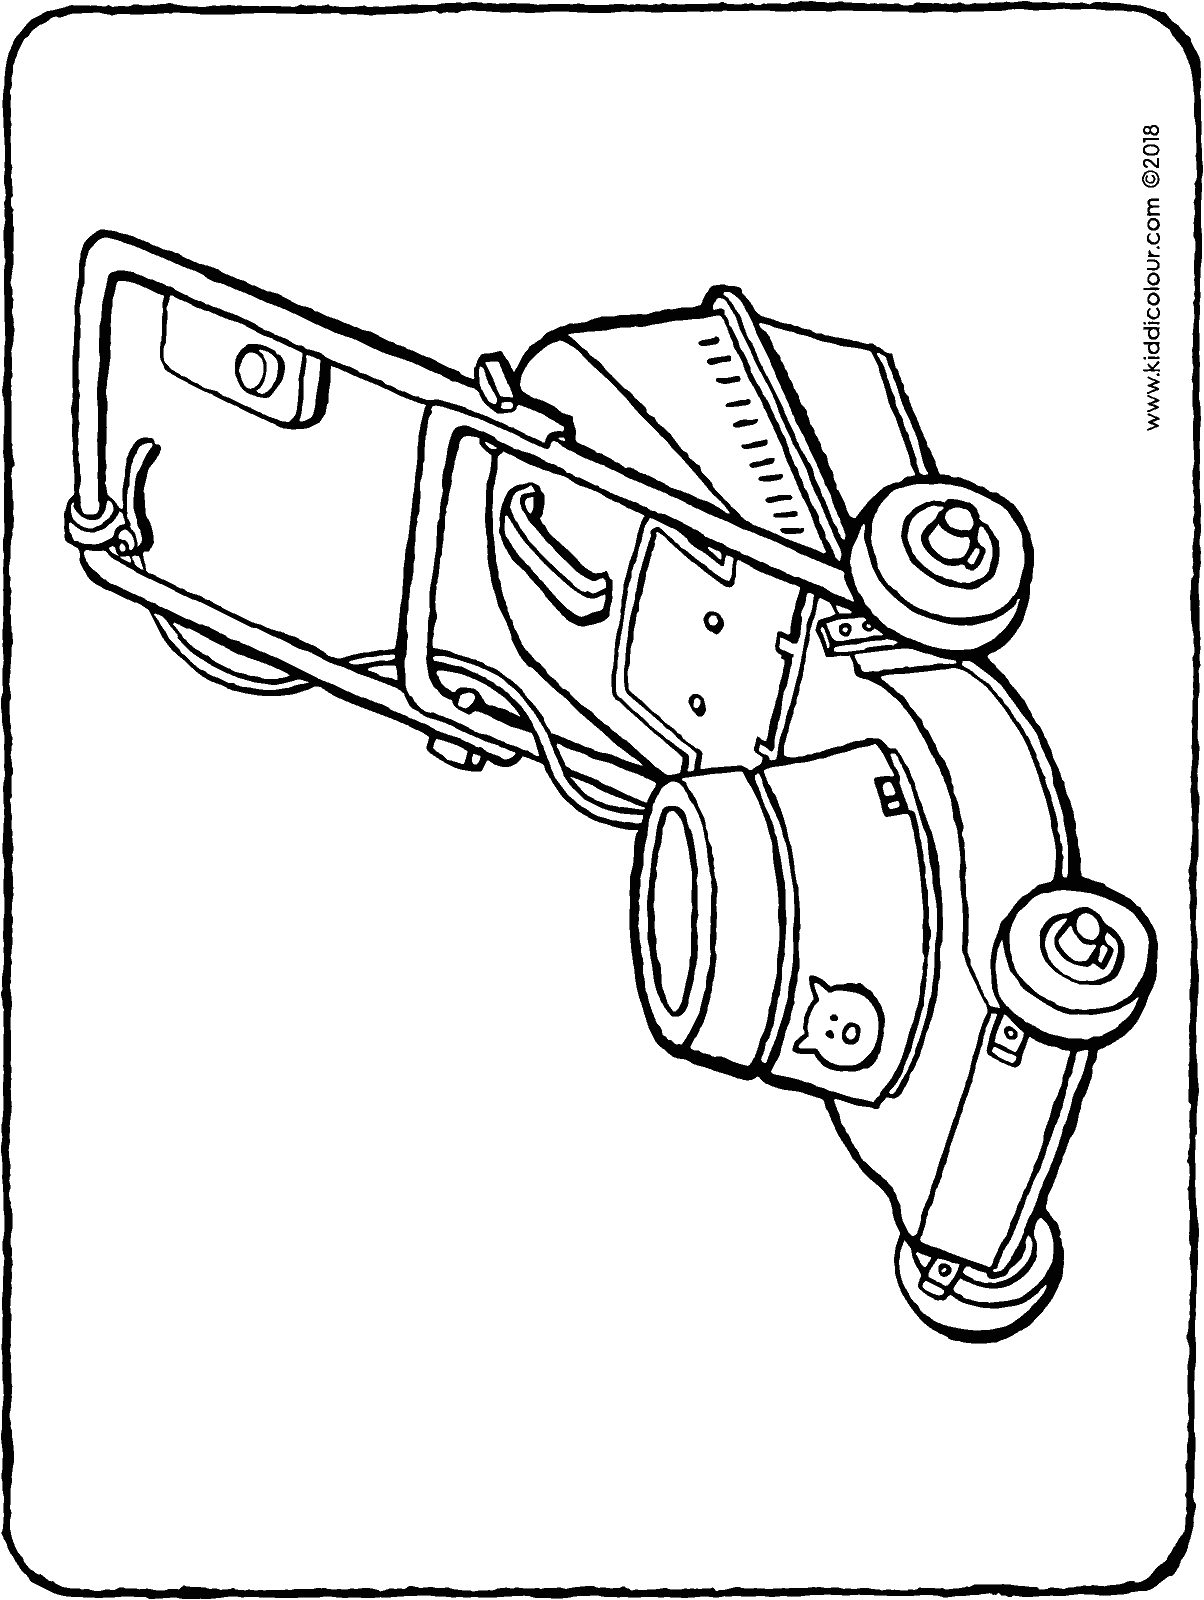 mower colouring page drawing picture 01H